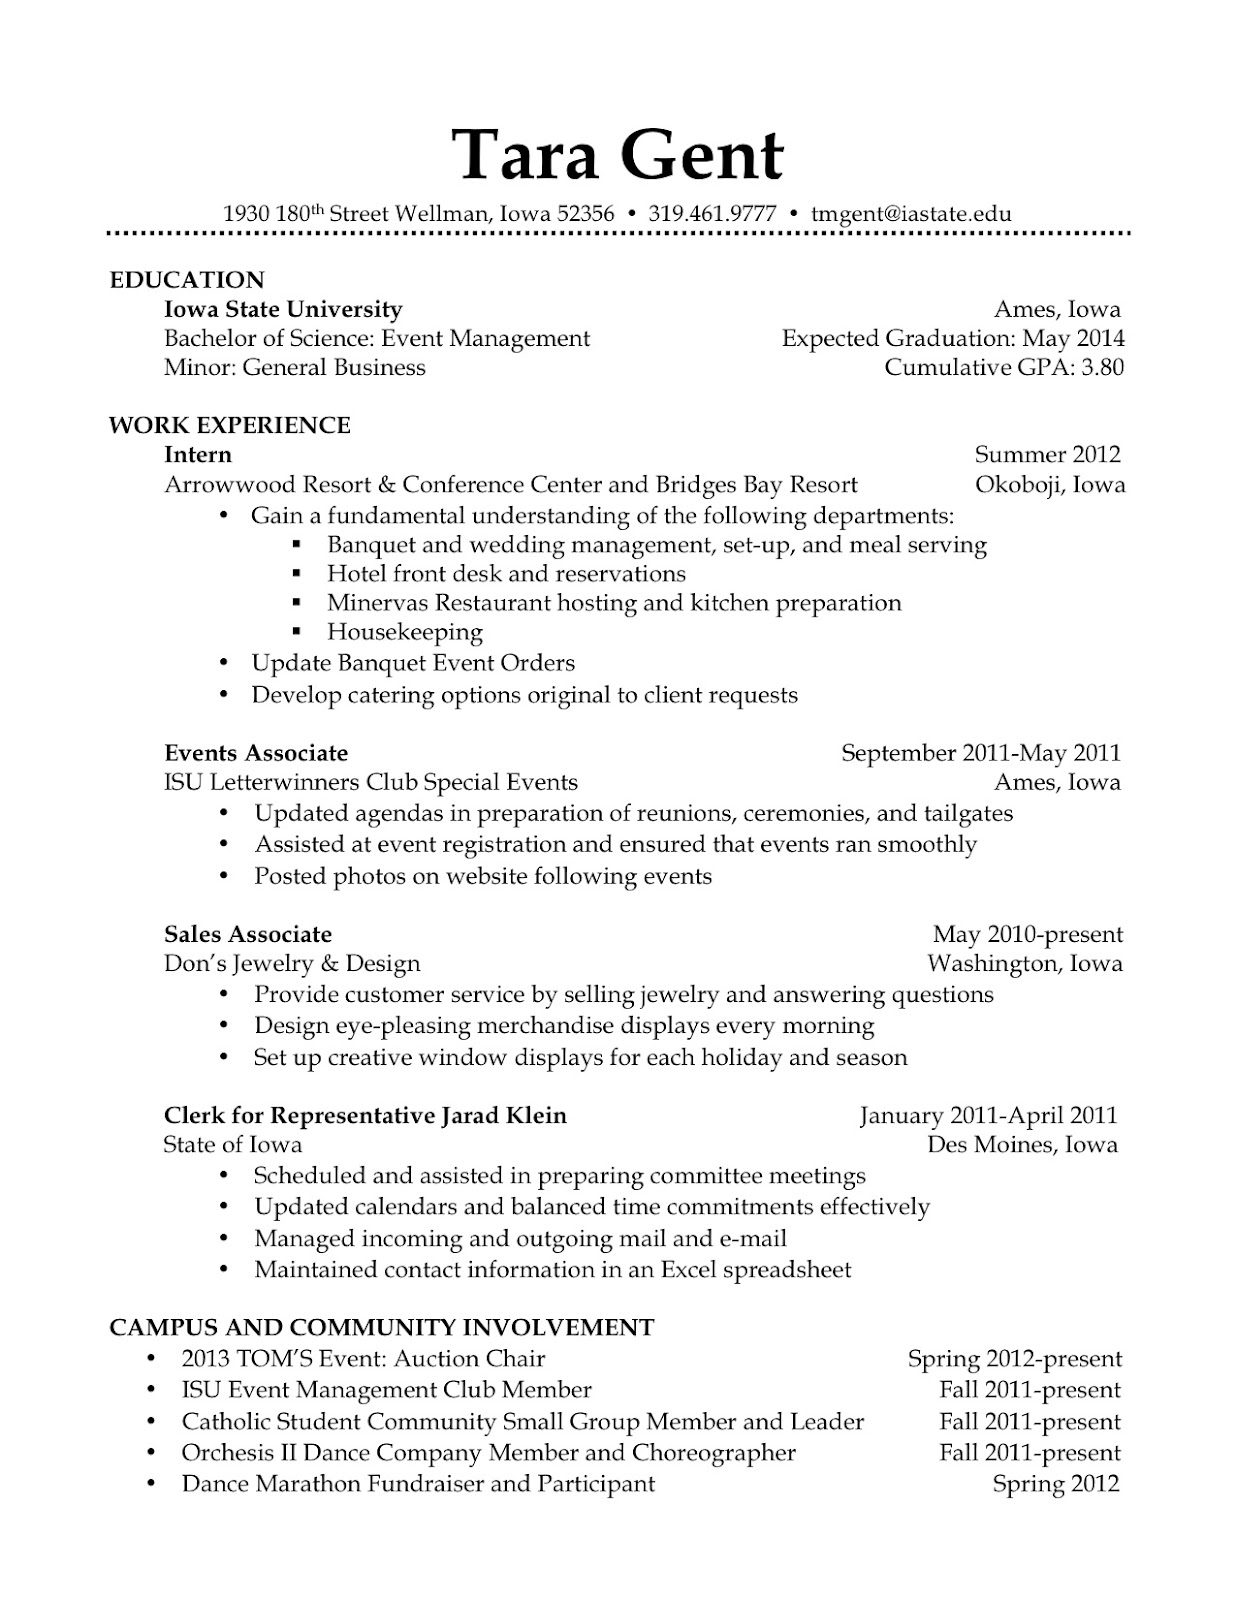 small business owner resume description curriculum vitae small business owner resume description small business owner job description example job resume skills for small